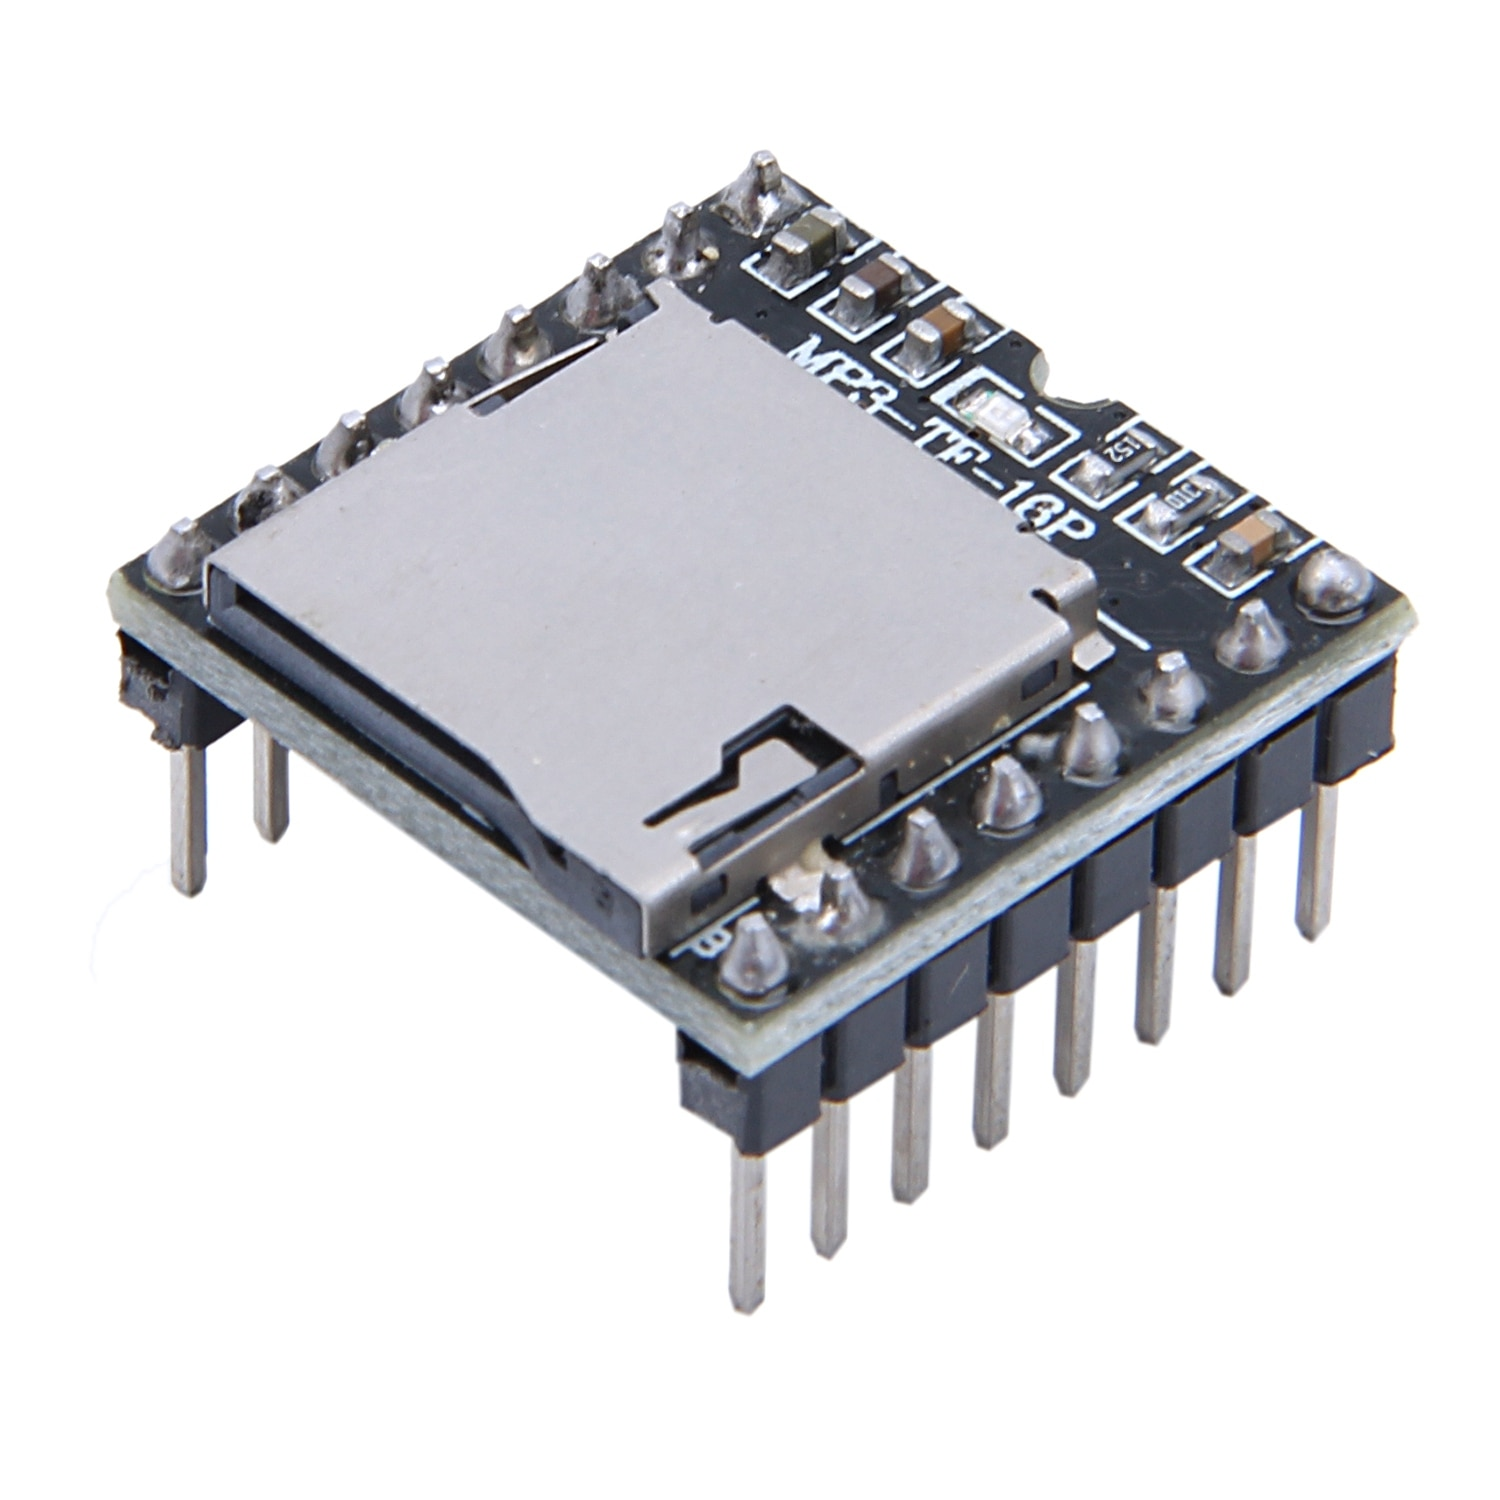 DFPlayer Mini MP3 Player Module For Arduino Black